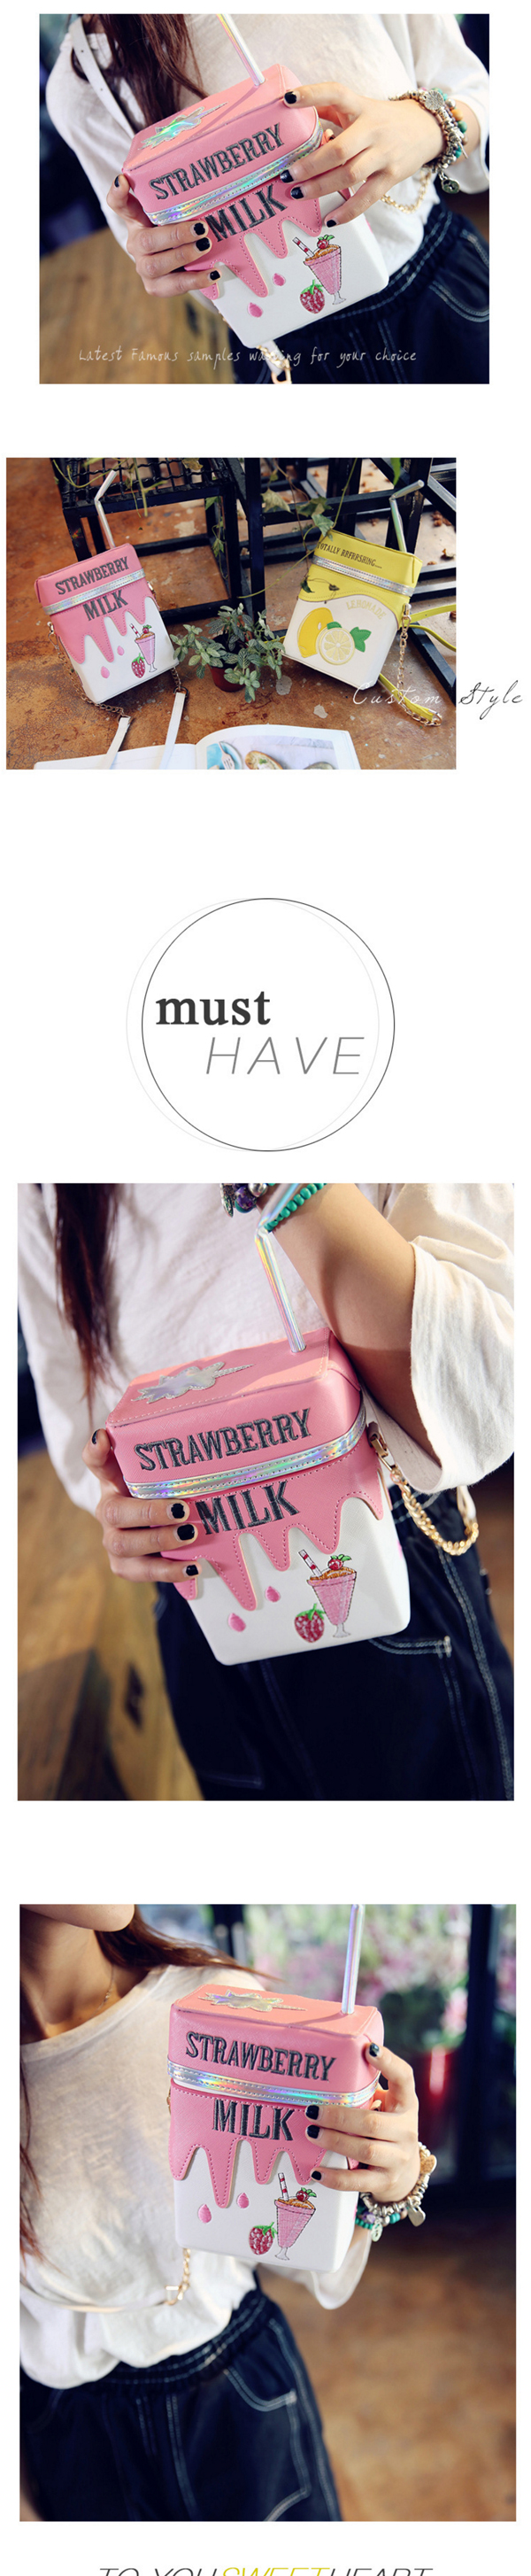 Women Funny Shoulder Bag Strawberry Milk Box Crossbody Bags Girl Small Bag Purse